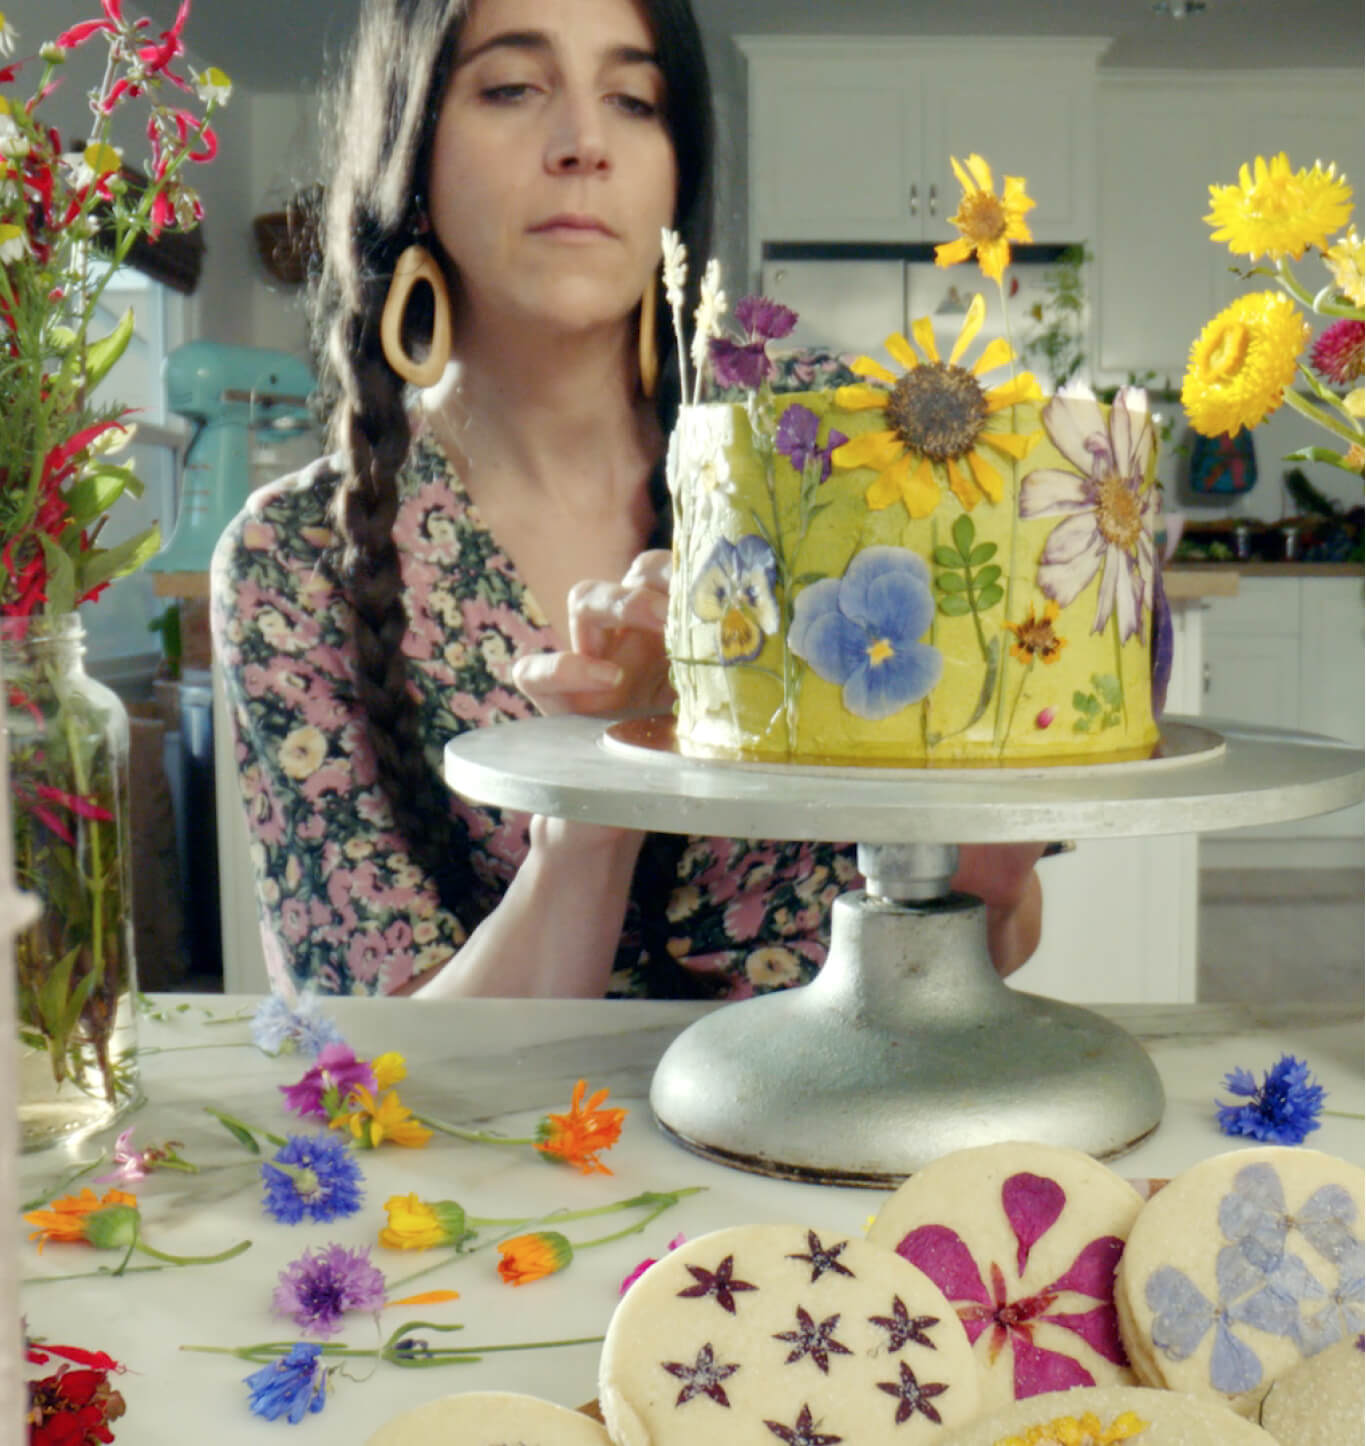 Loria Stern decorating a cake with edible flowers.